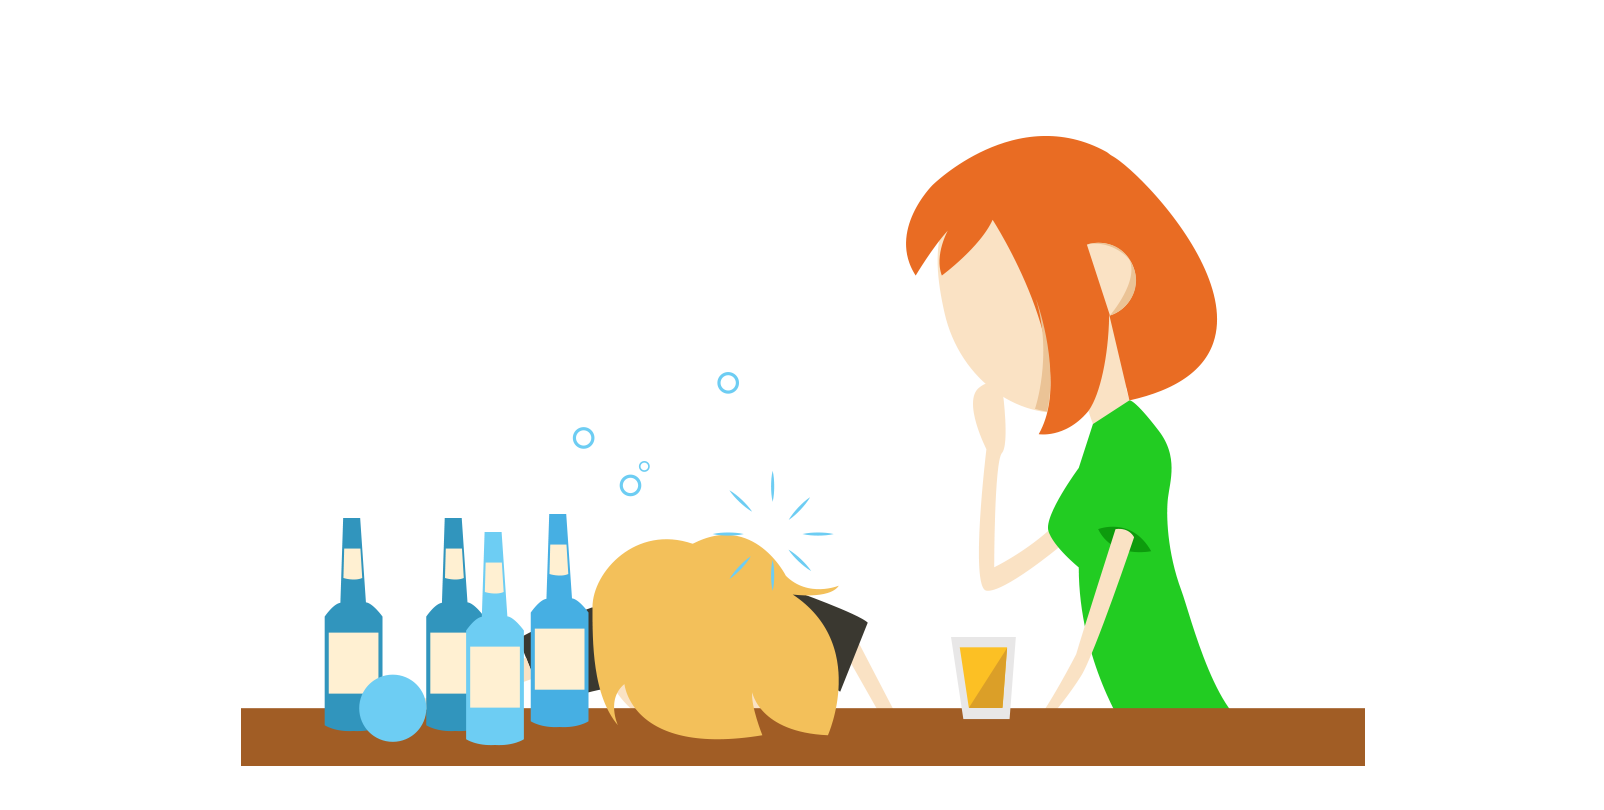 Effects of abuse addiction. Drinking clipart drug alcohol